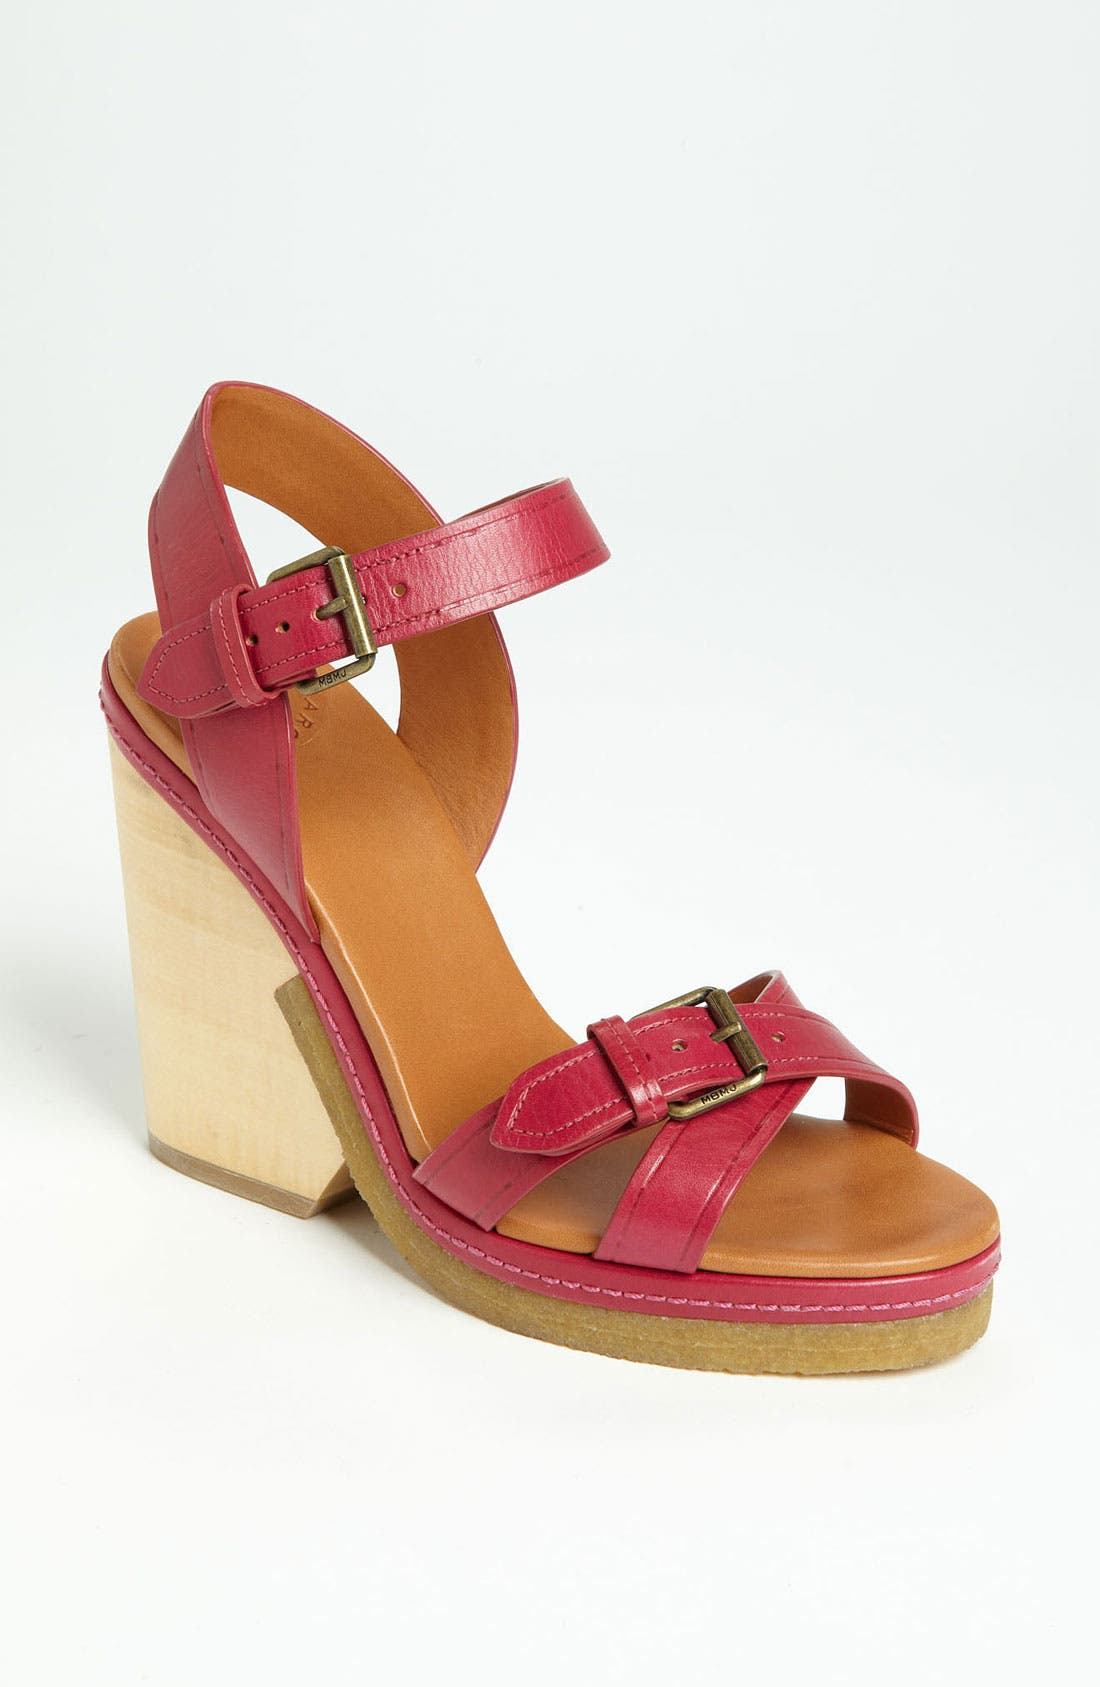 Main Image - MARC BY MARC JACOBS 'Buckle Up' Sandal (Exclusive Color)